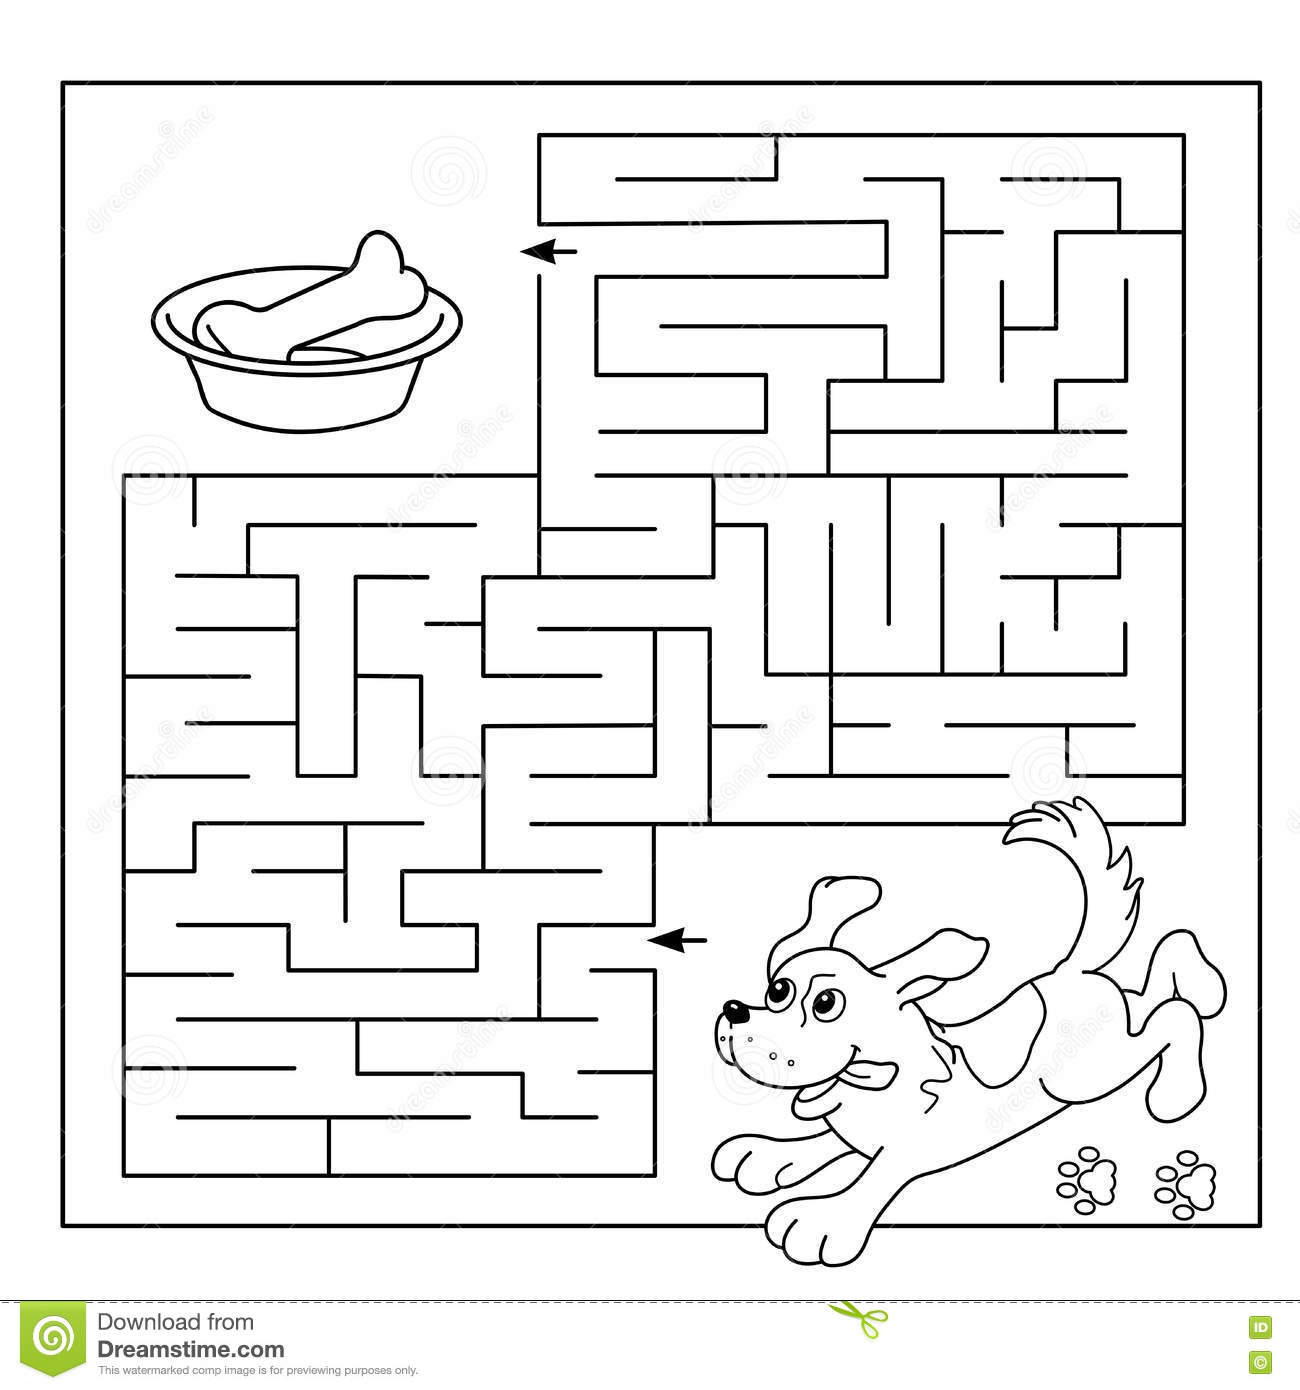 Education Maze Or Labyrinth Game For Preschool Children. Puzzle ...